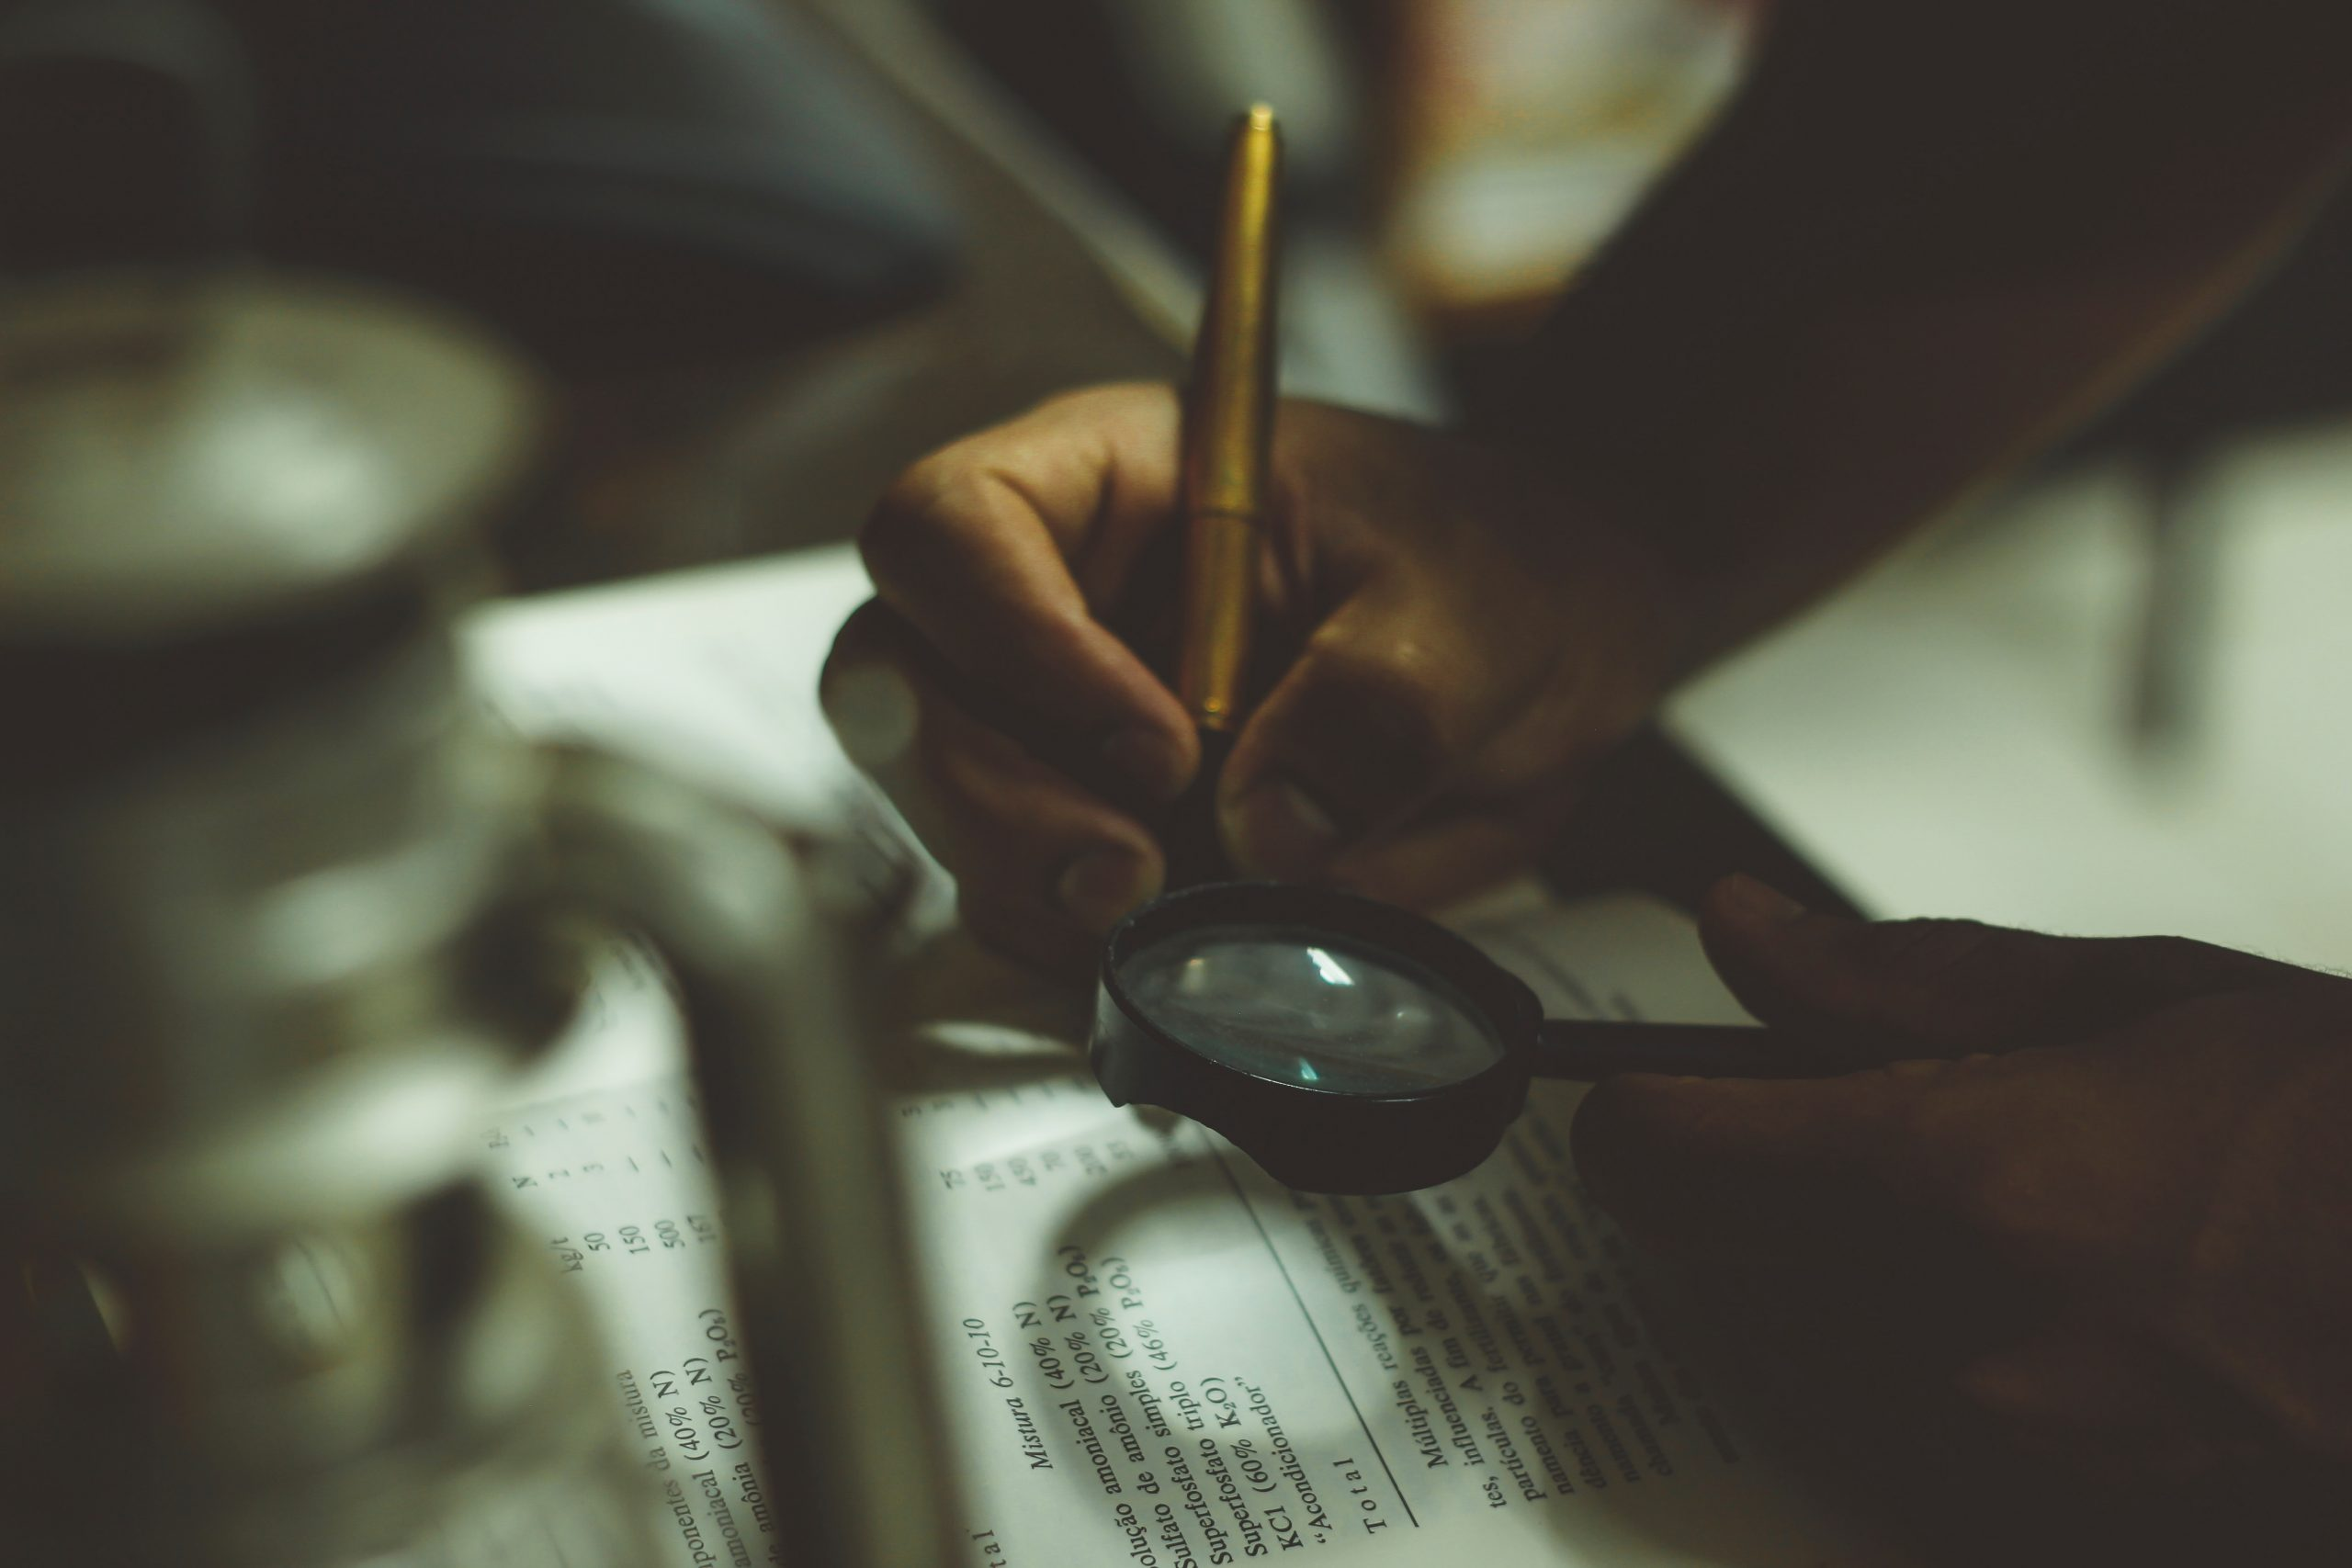 hands holding pen and magnifying glass over a book